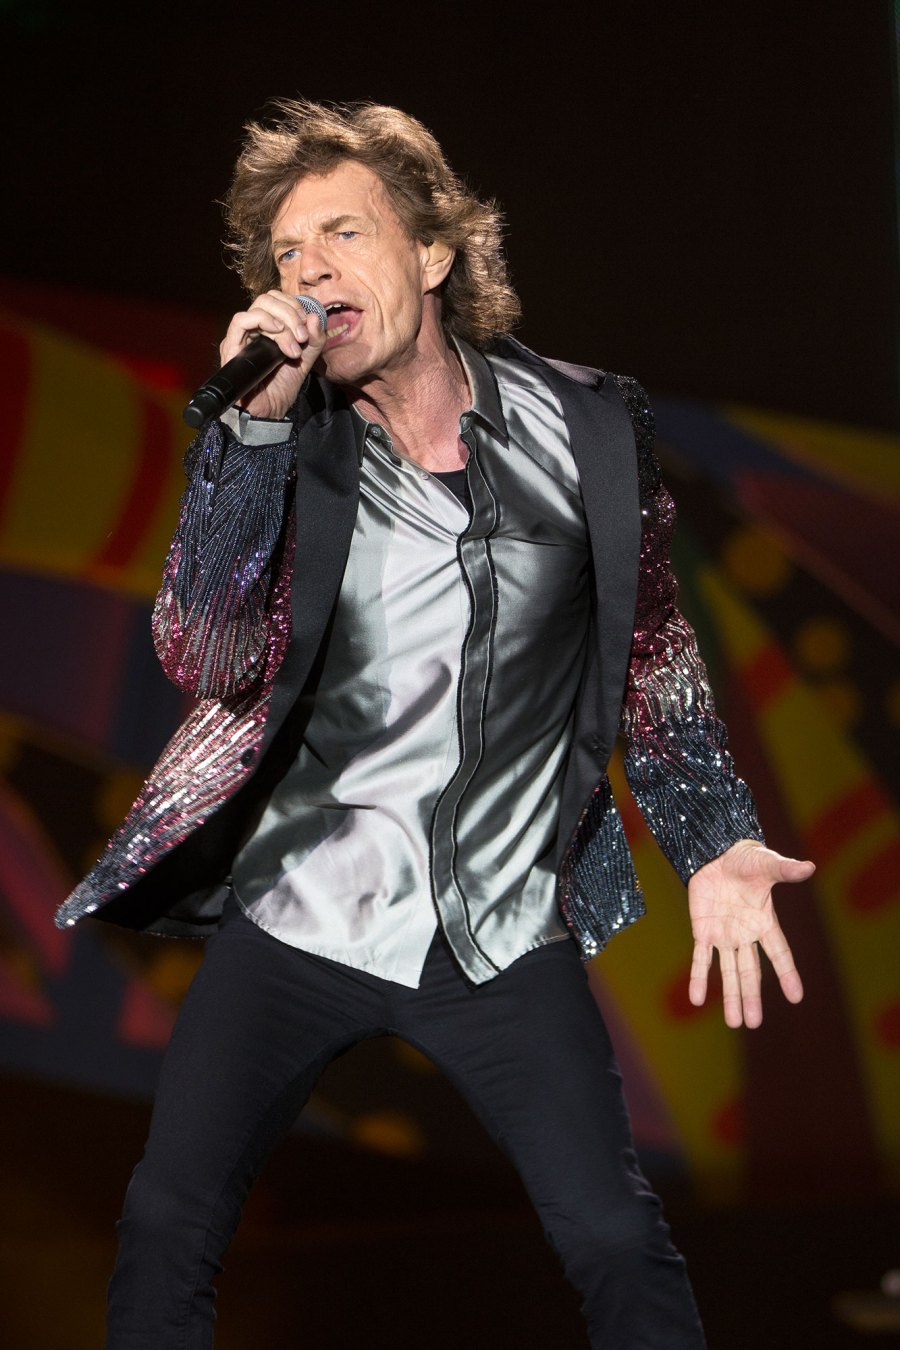 mick jagger health scare